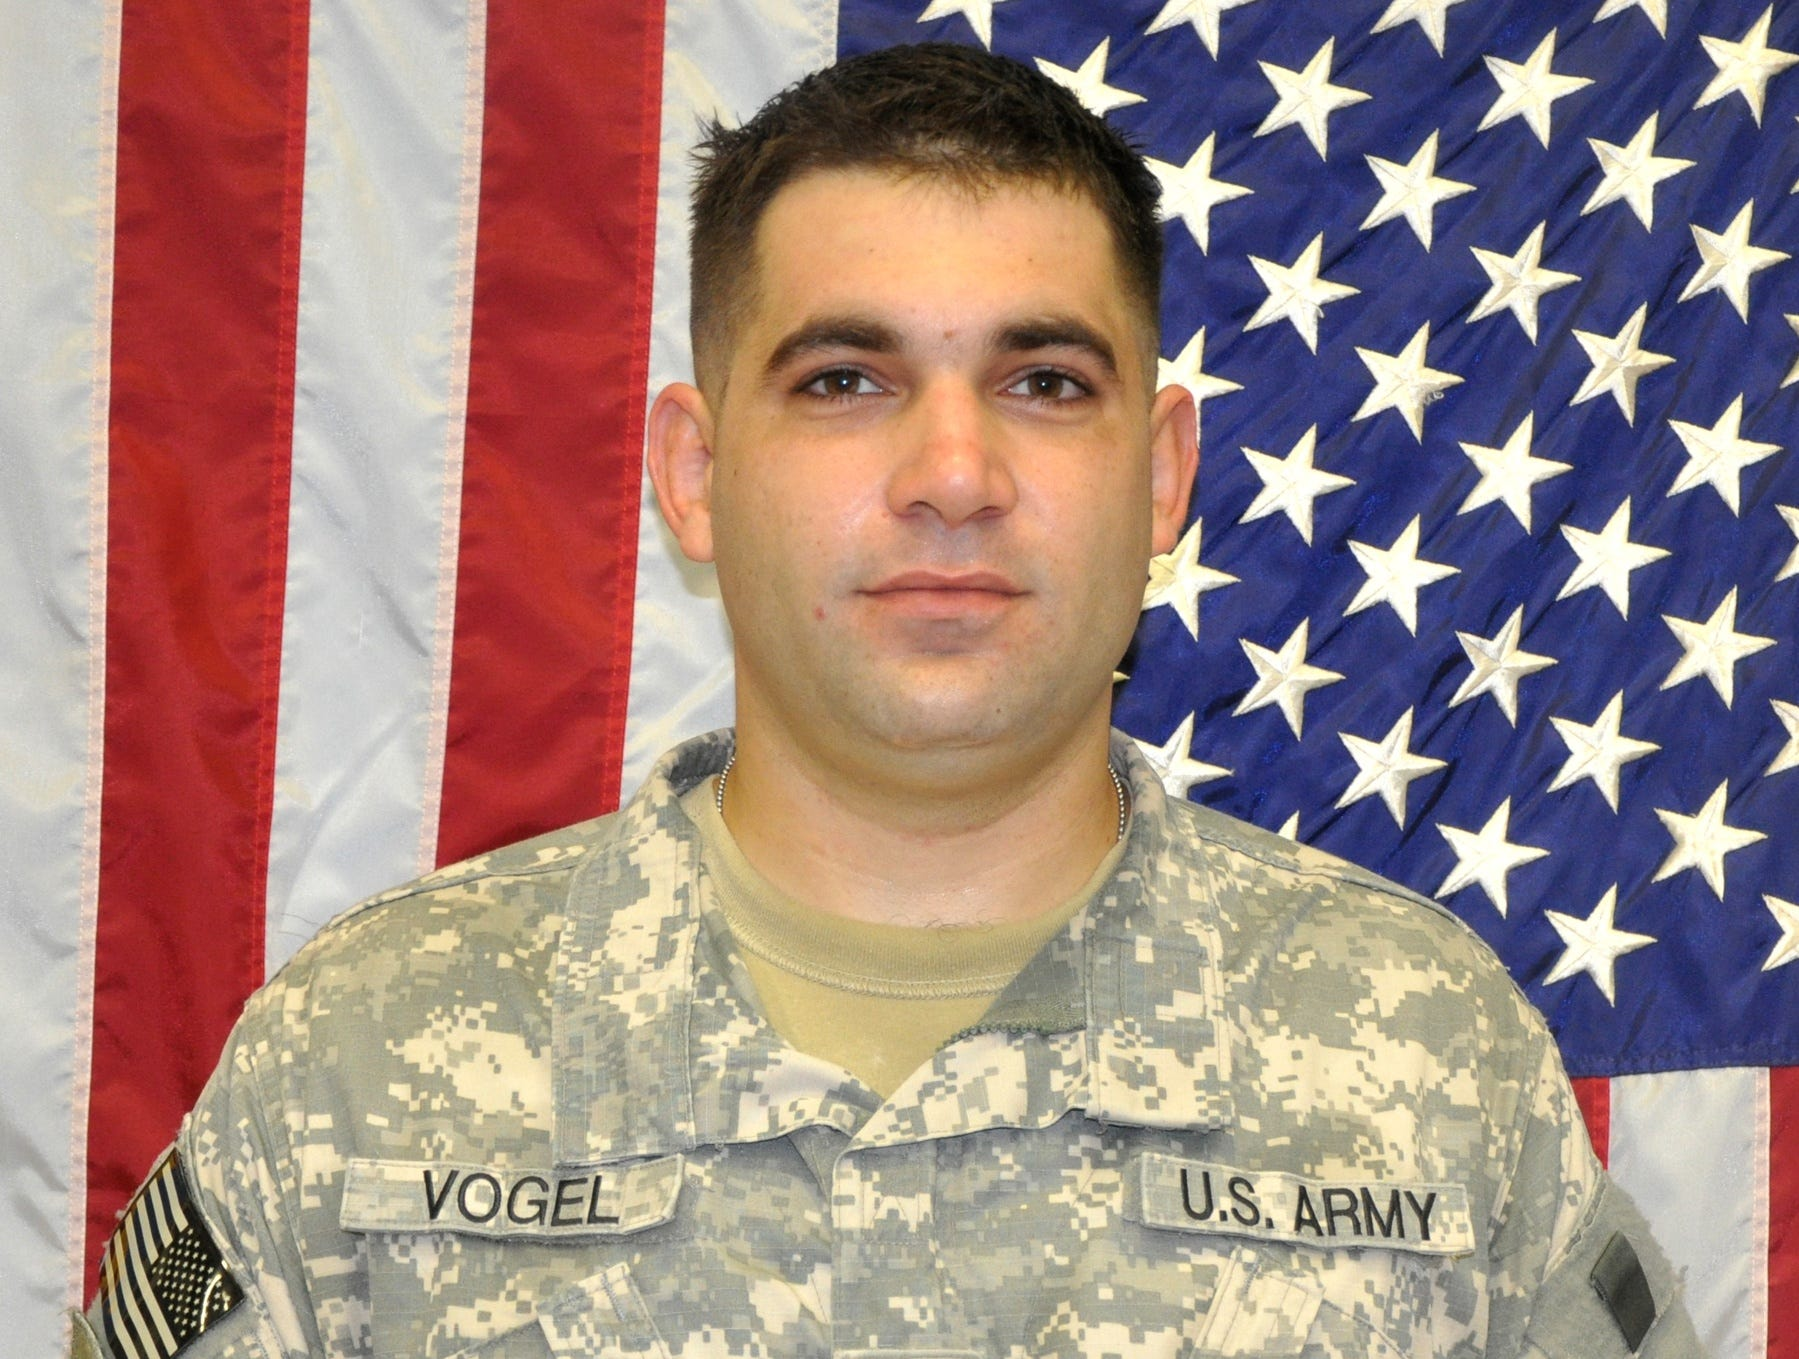 Army Spc. Ross E. Vogel III, 27, of Red Lion died Sept. 29, 2009, in Kut, Iraq, of injuries suffered from a non-combat-related incident.